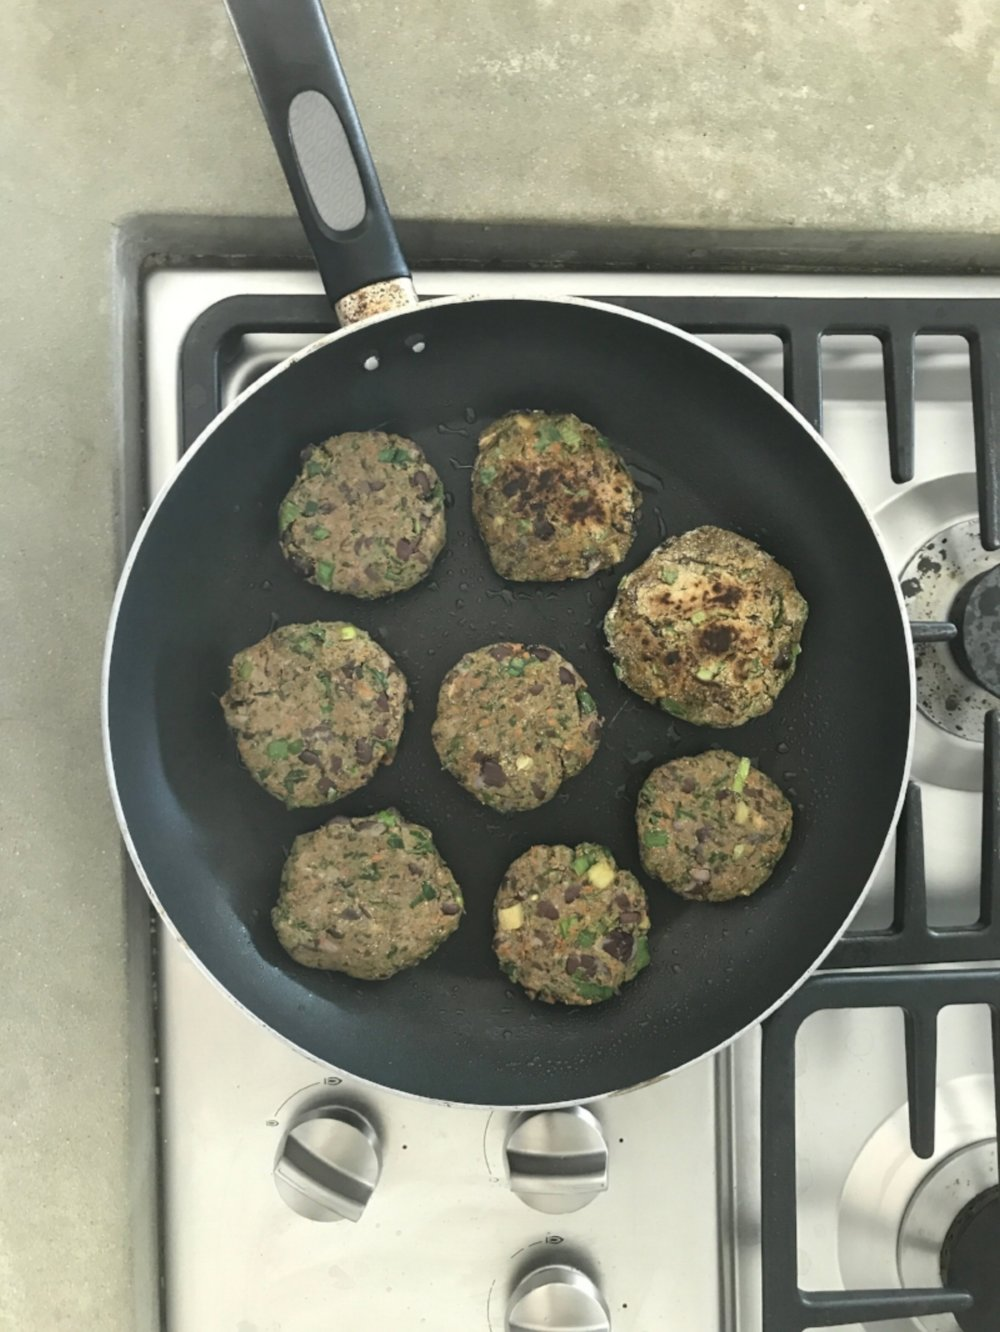 After combing all the ingredients in a food processor, we added the patties to a sizzling skillet.